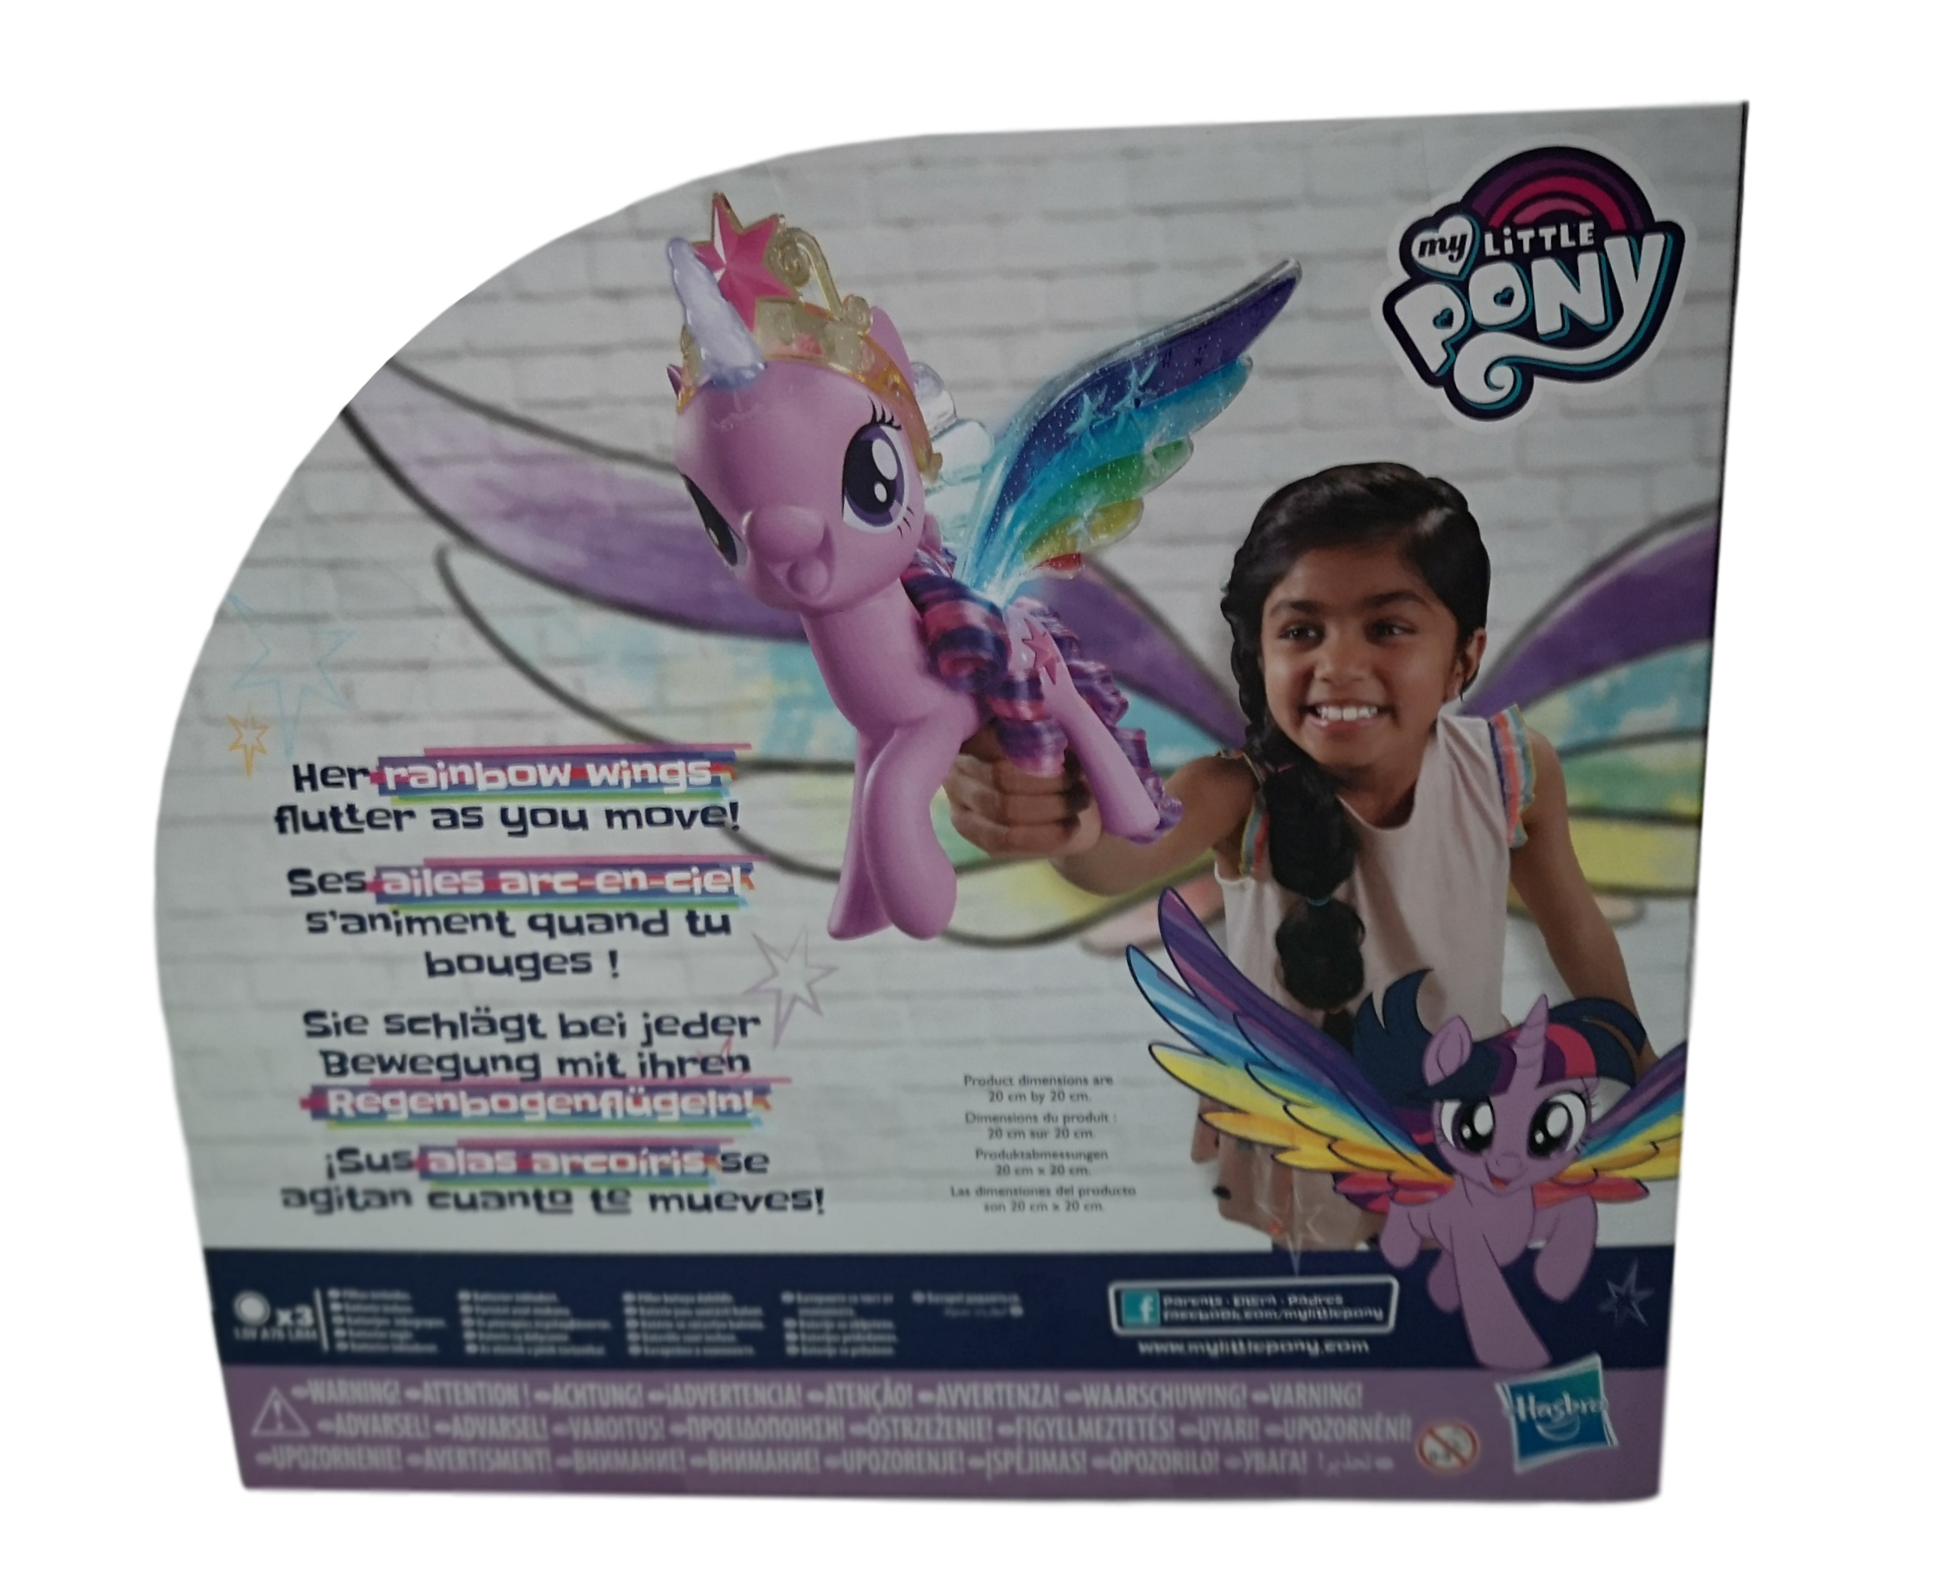 3a0513882dd MY LITTLE PONY  RAINBOW WINGS TWILIGHT SPARKLE 8